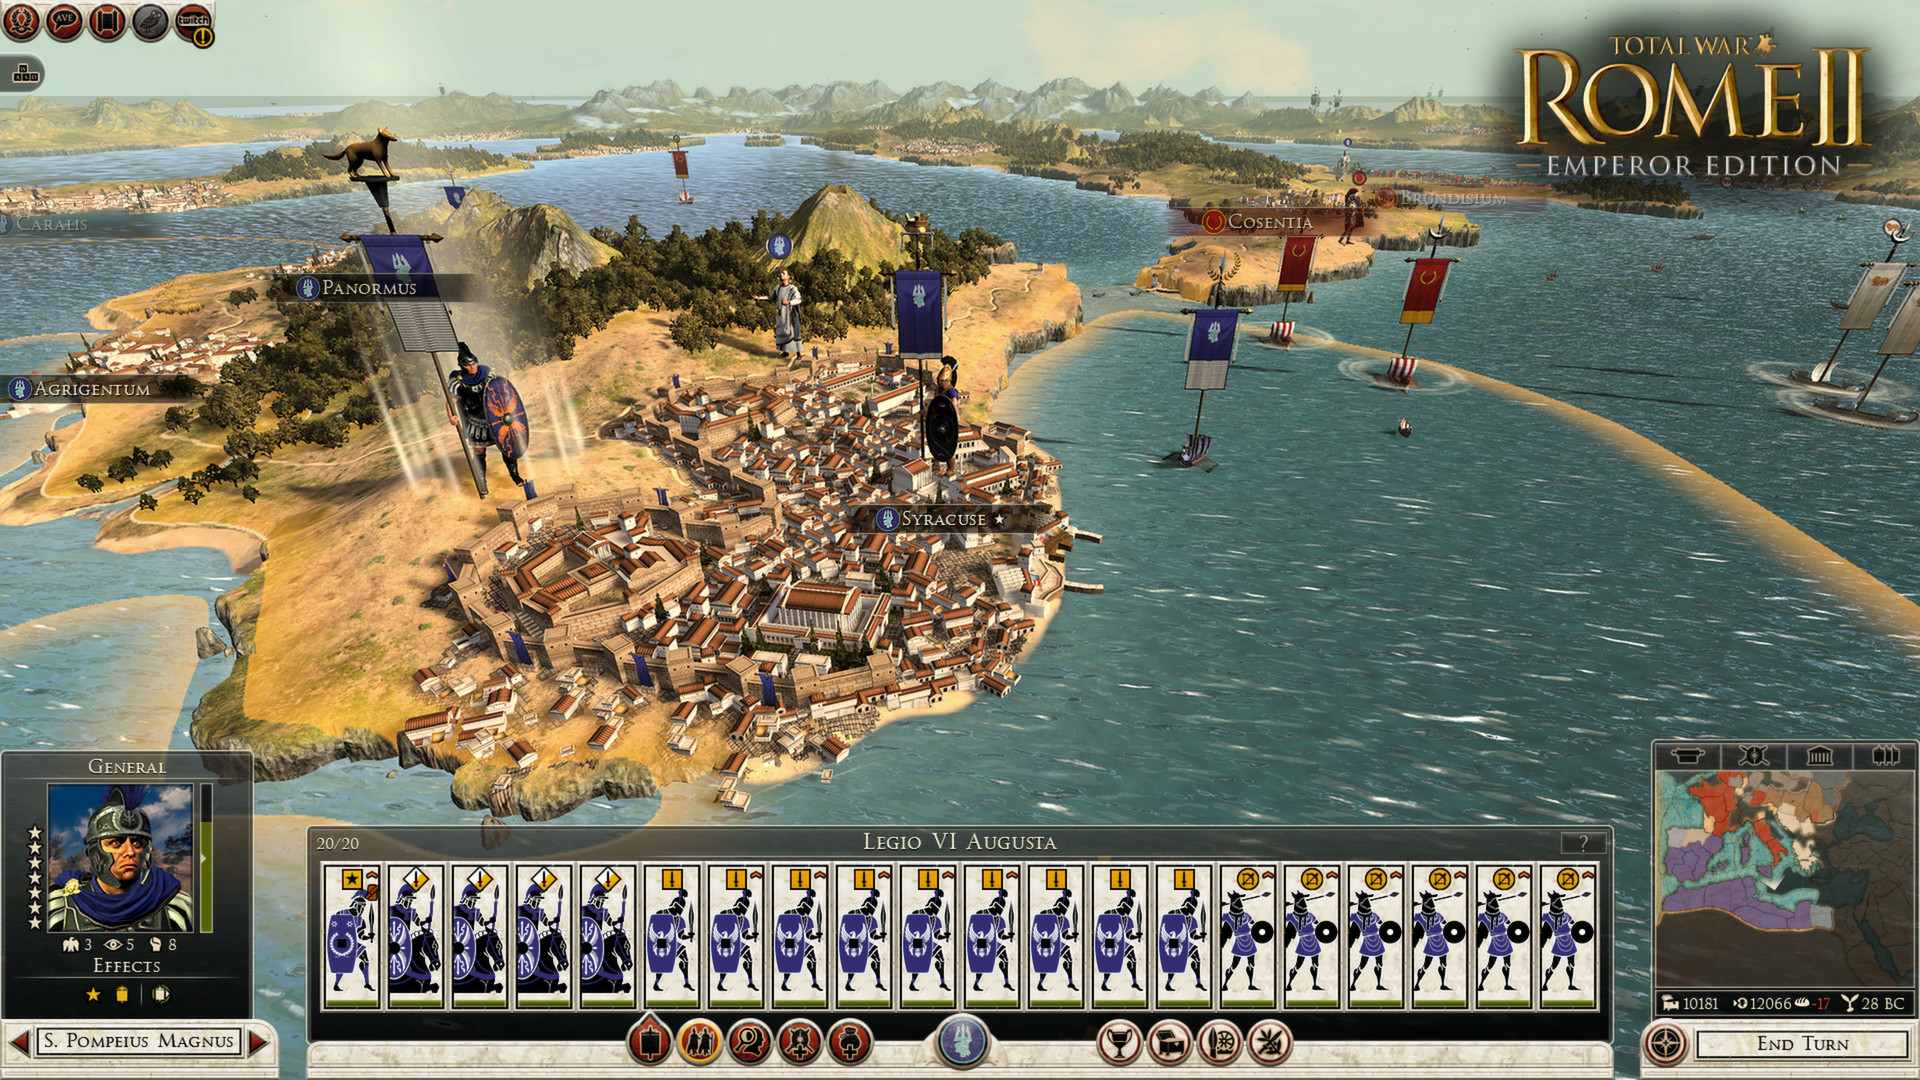 download trainer total war rome 2 v2.2.0